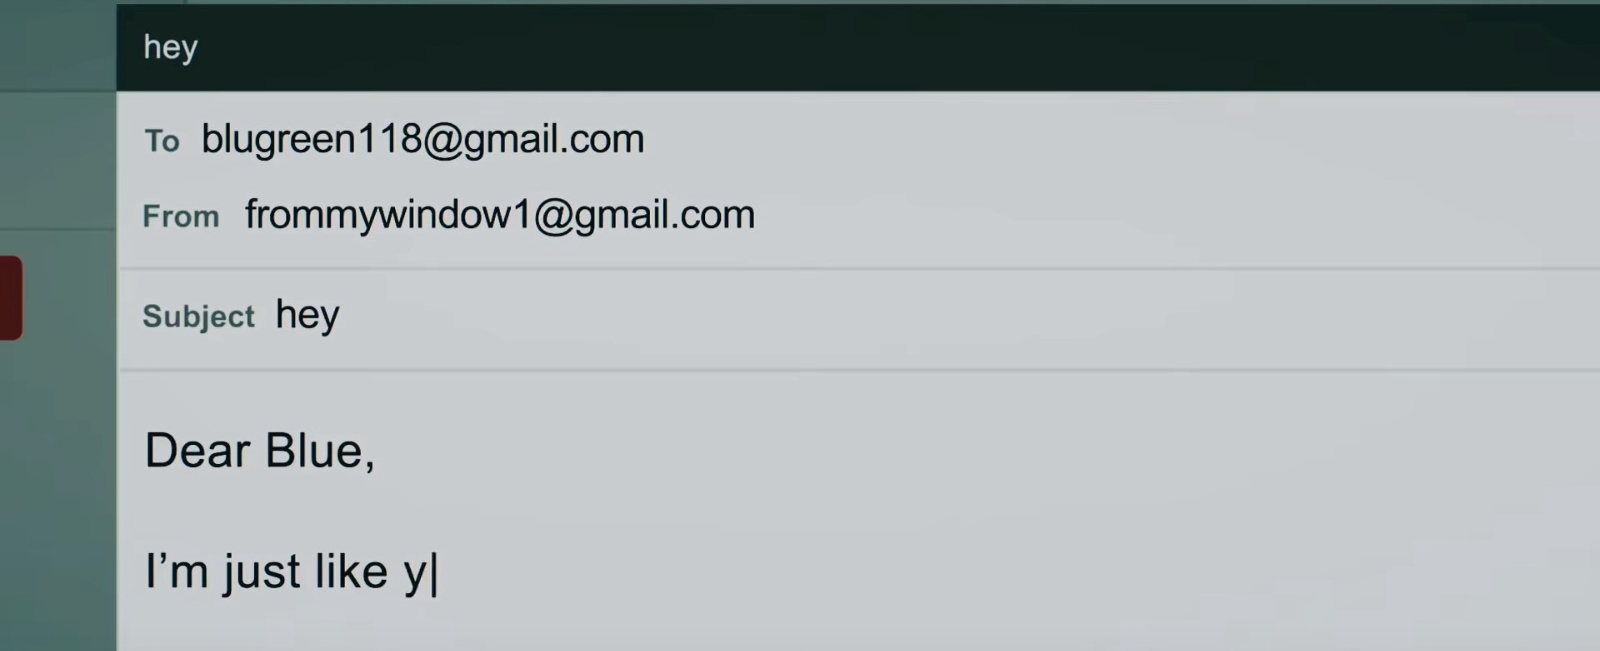 how to change gmail email address 2018